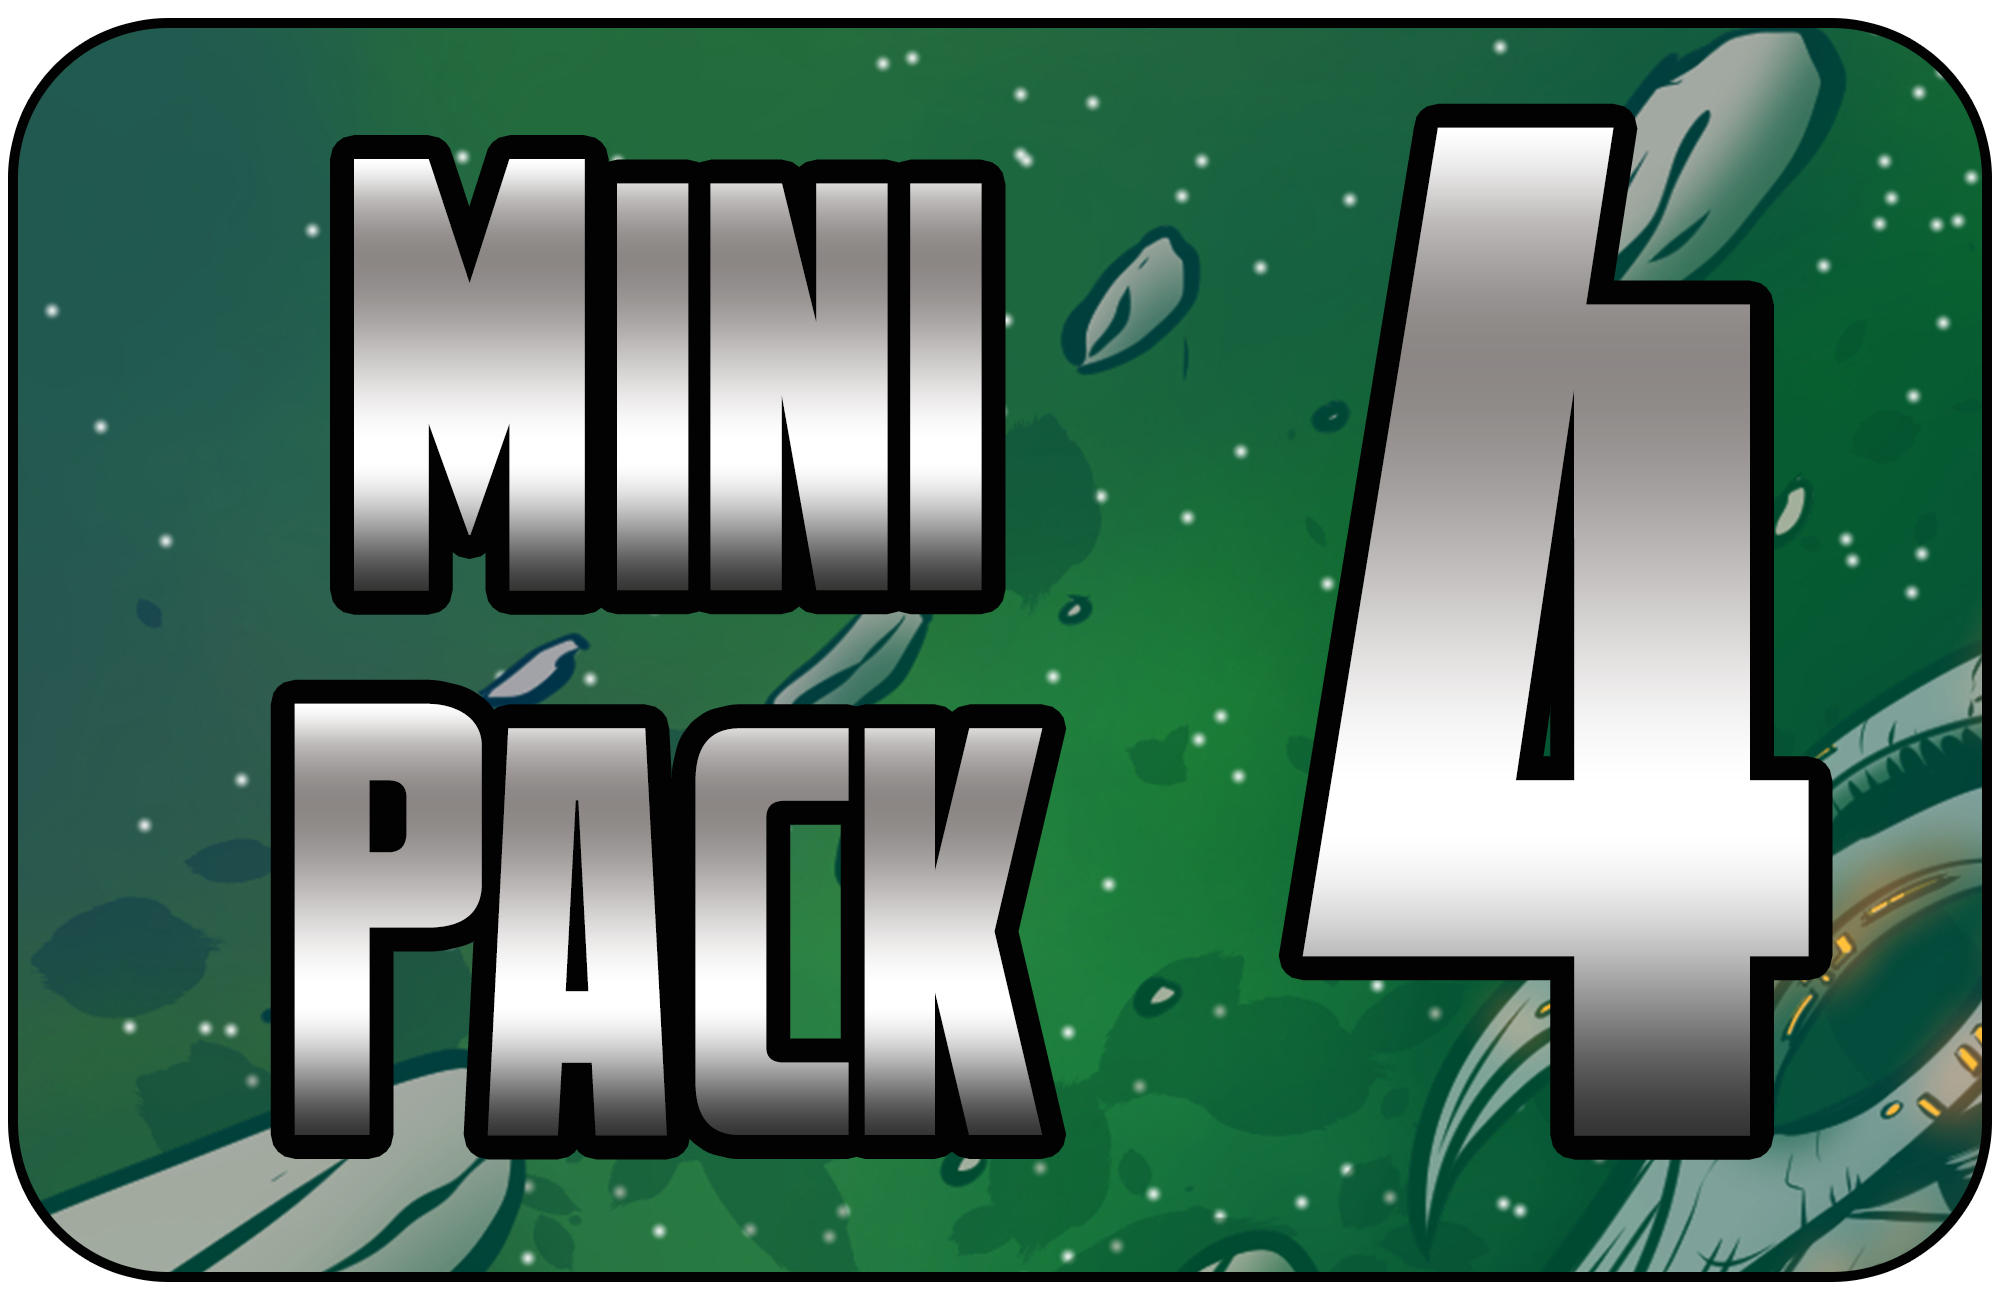 _ICON minipack4.png